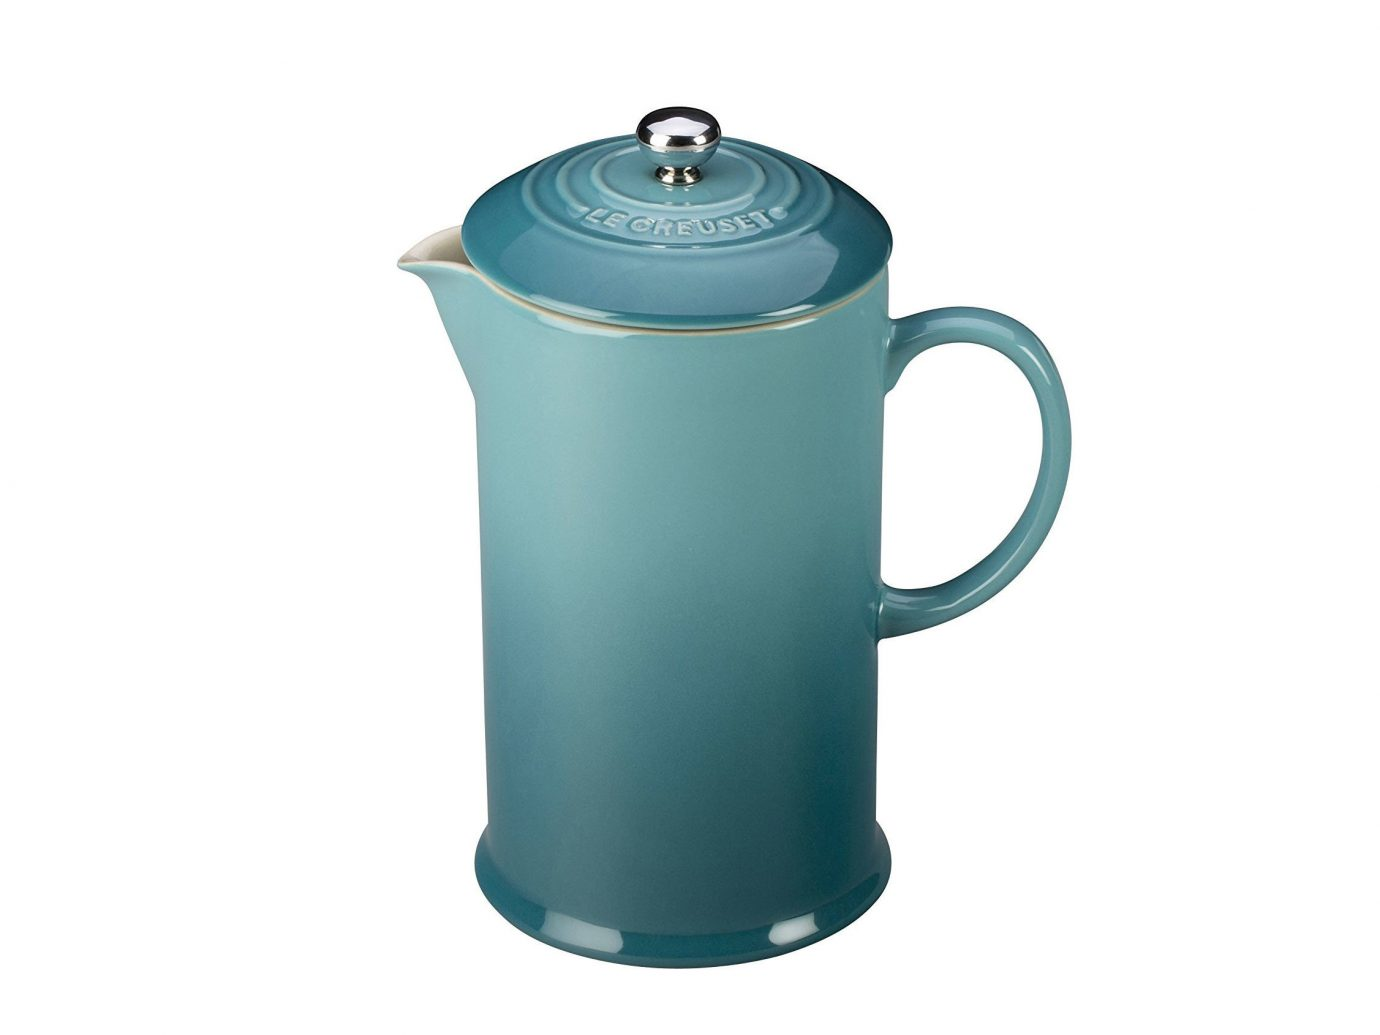 Style + Design man made object kettle small appliance product drinkware bottle tableware kitchenware